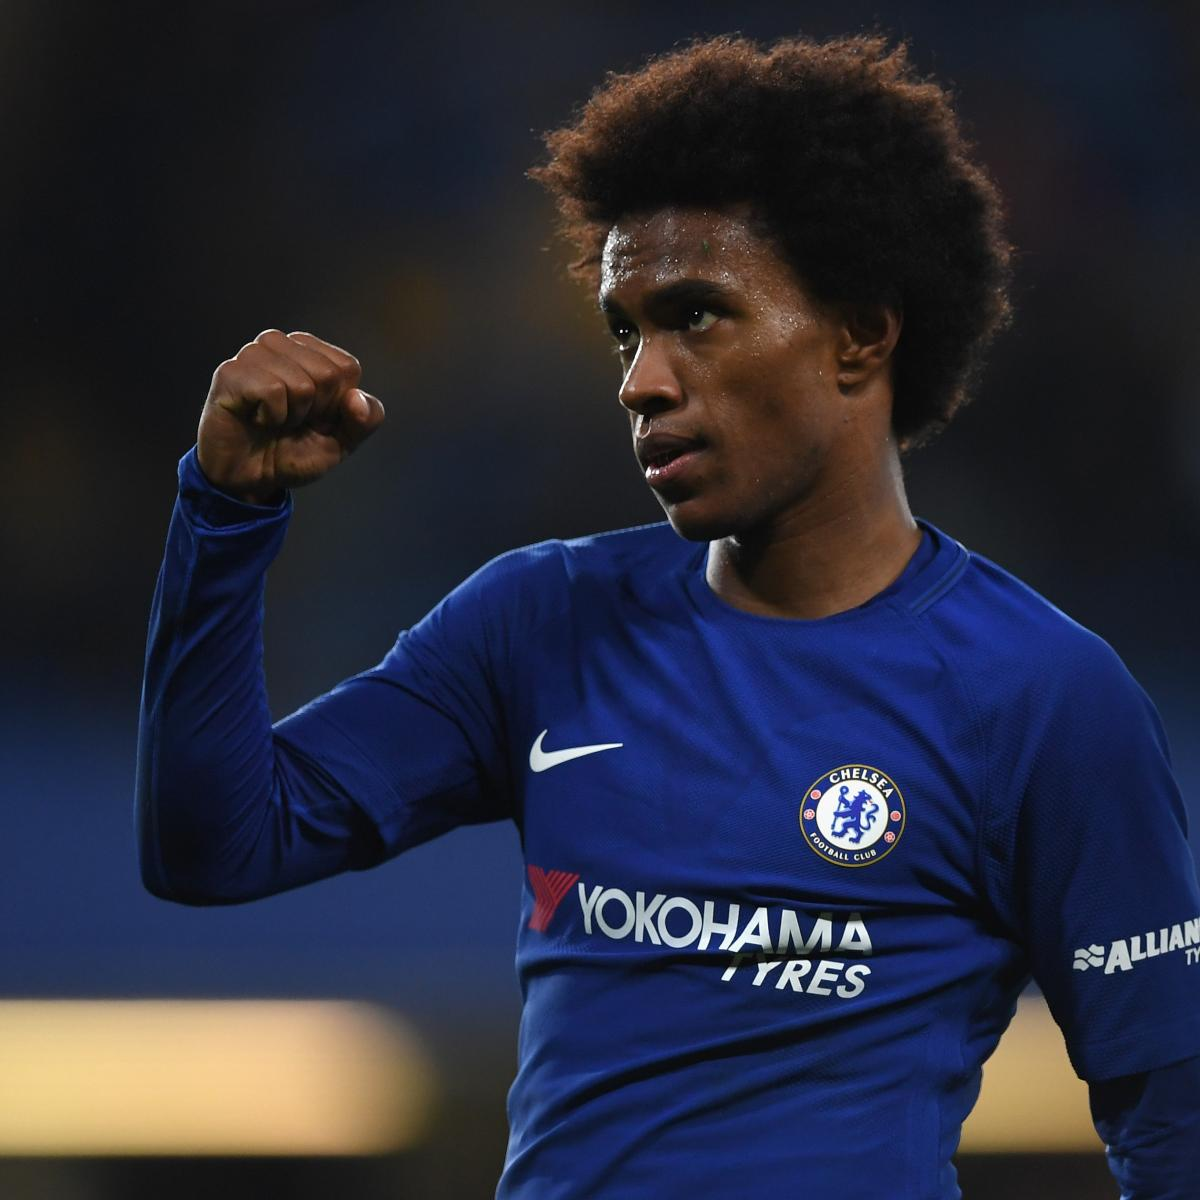 Psg Transfer News Latest Rumours On Lucas Moura And: Chelsea Transfer News: Latest Rumours On Willian And